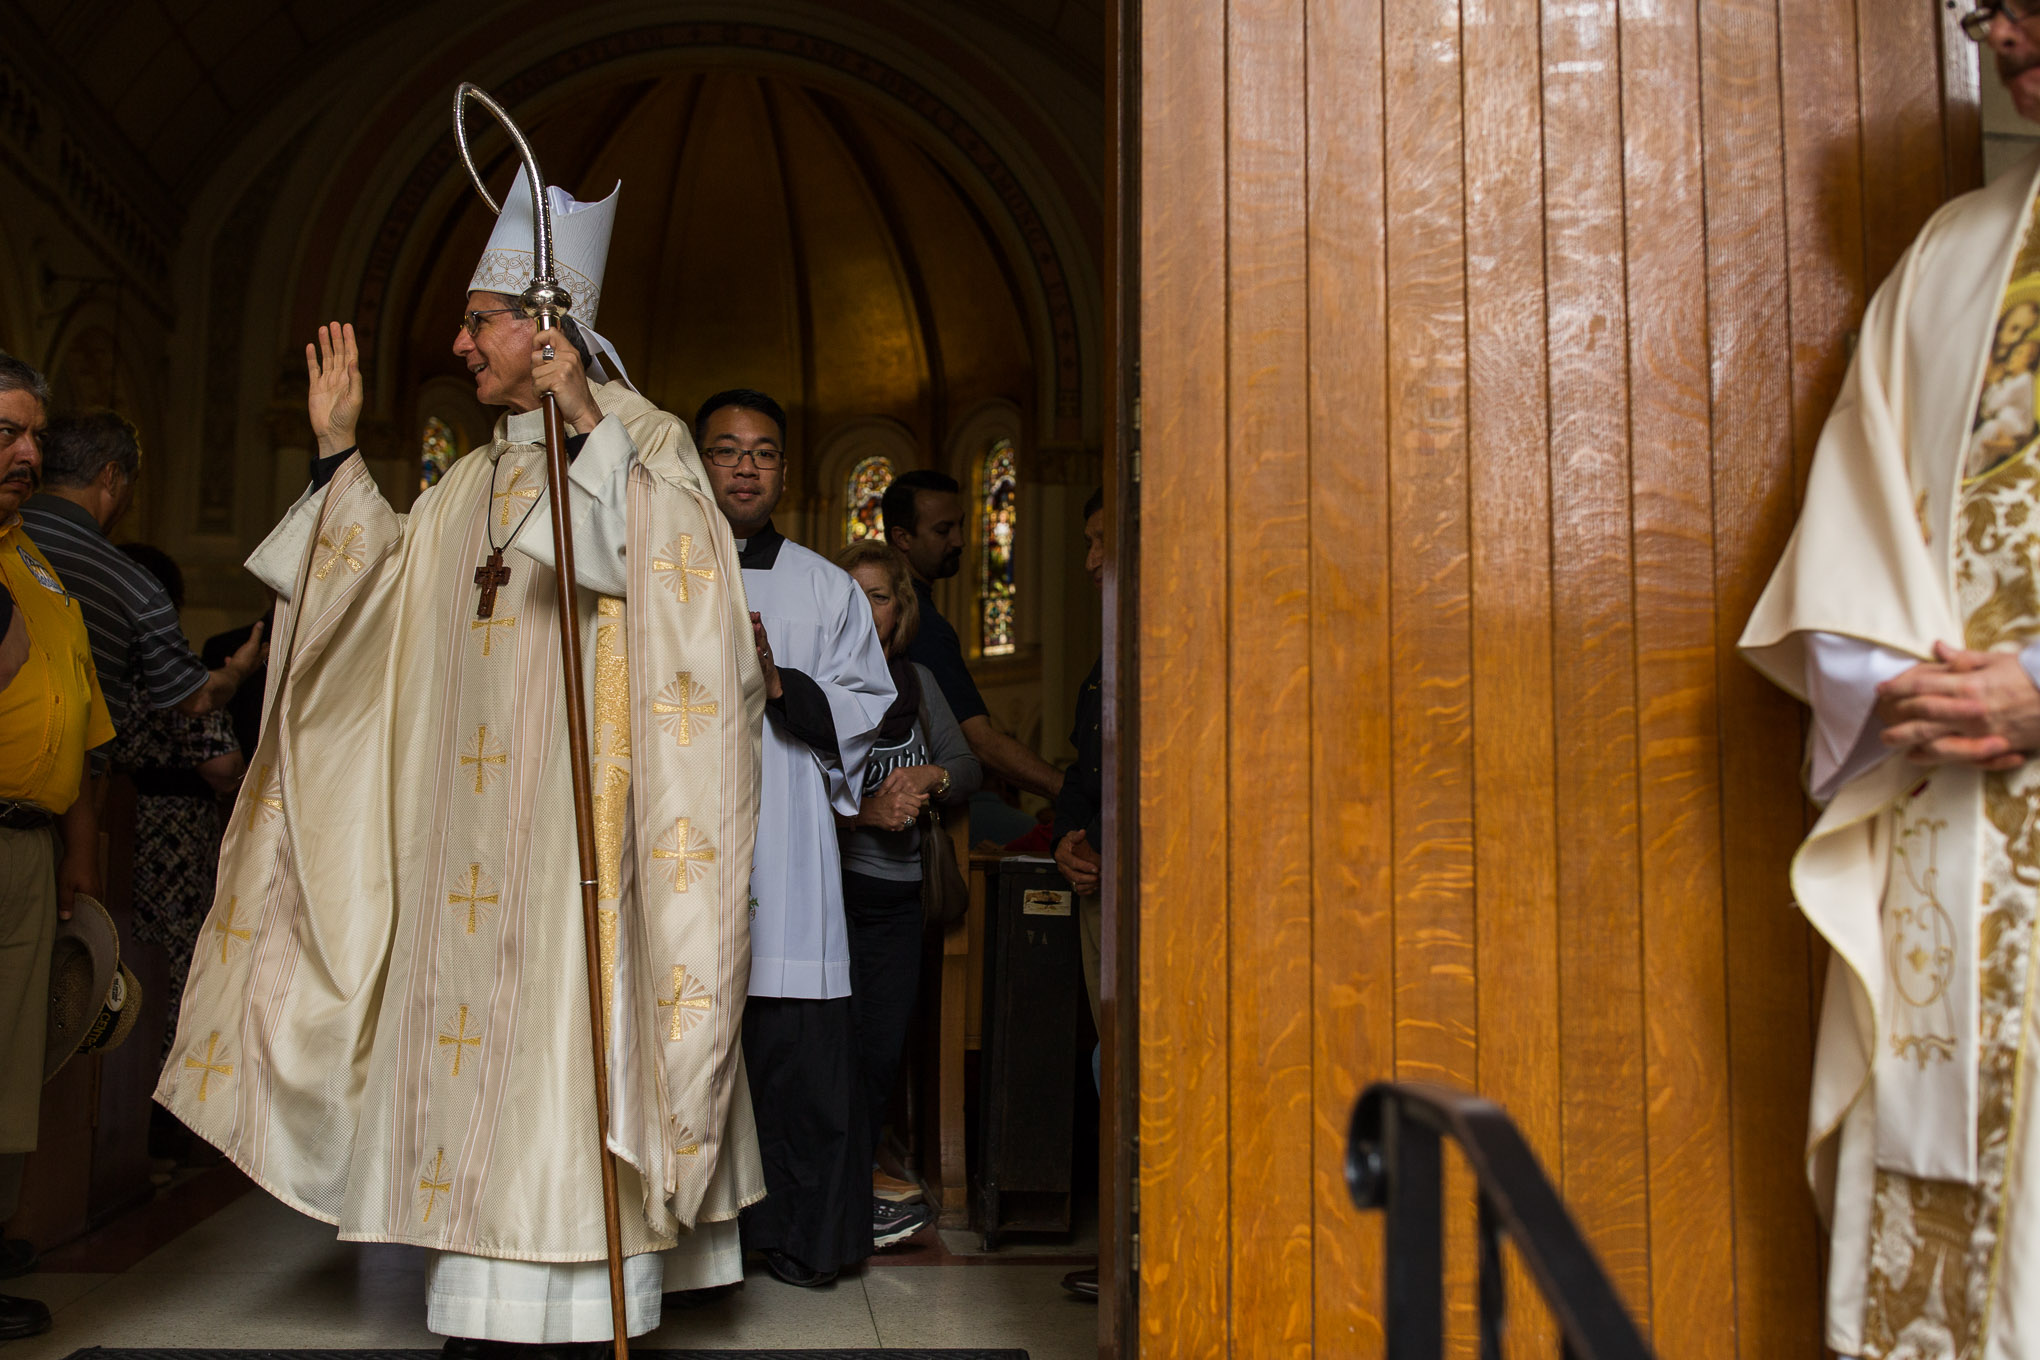 Members of the Catholic clergy led by Archbishop Gustavo García-Siller exit Saint Mary's Catholic Church. Photo by Scott Ball.